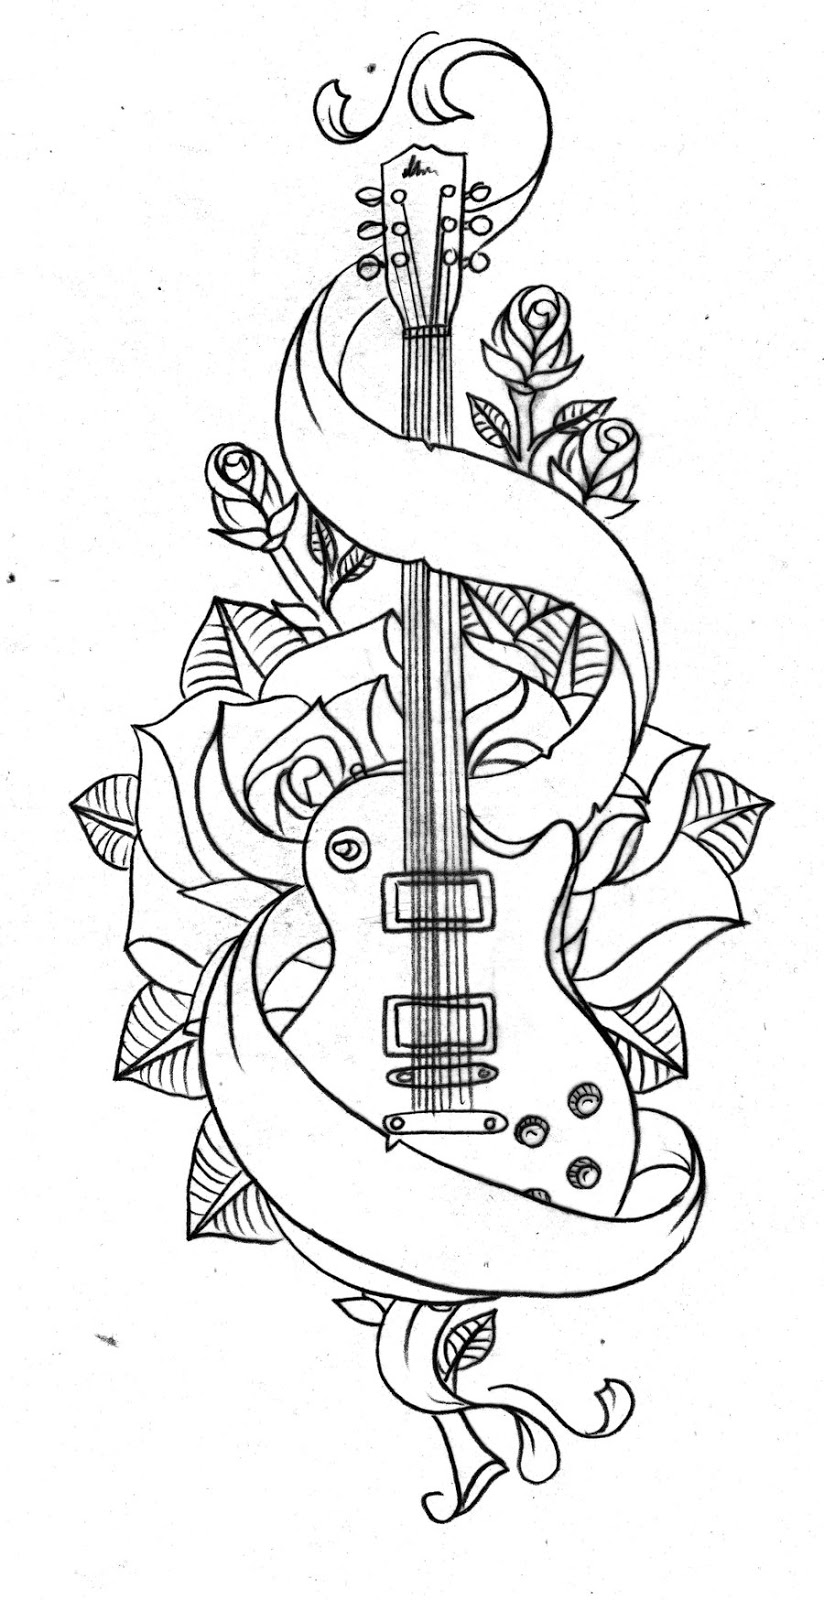 Drawn musical banner Tattoos Music art musicical guitar